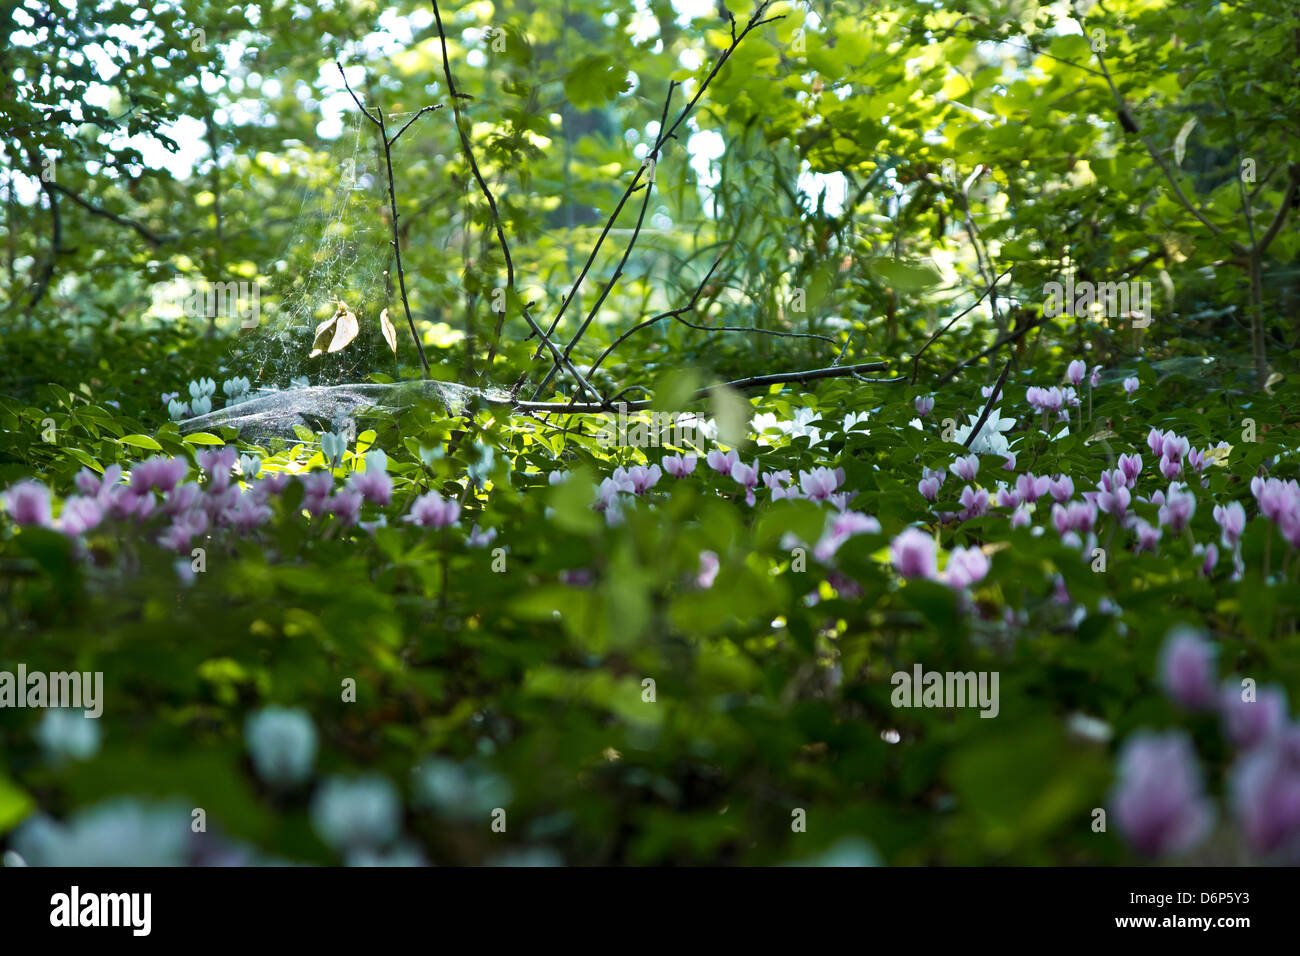 A sunray lightning a cobweb surrounded by flowers. - Stock Image